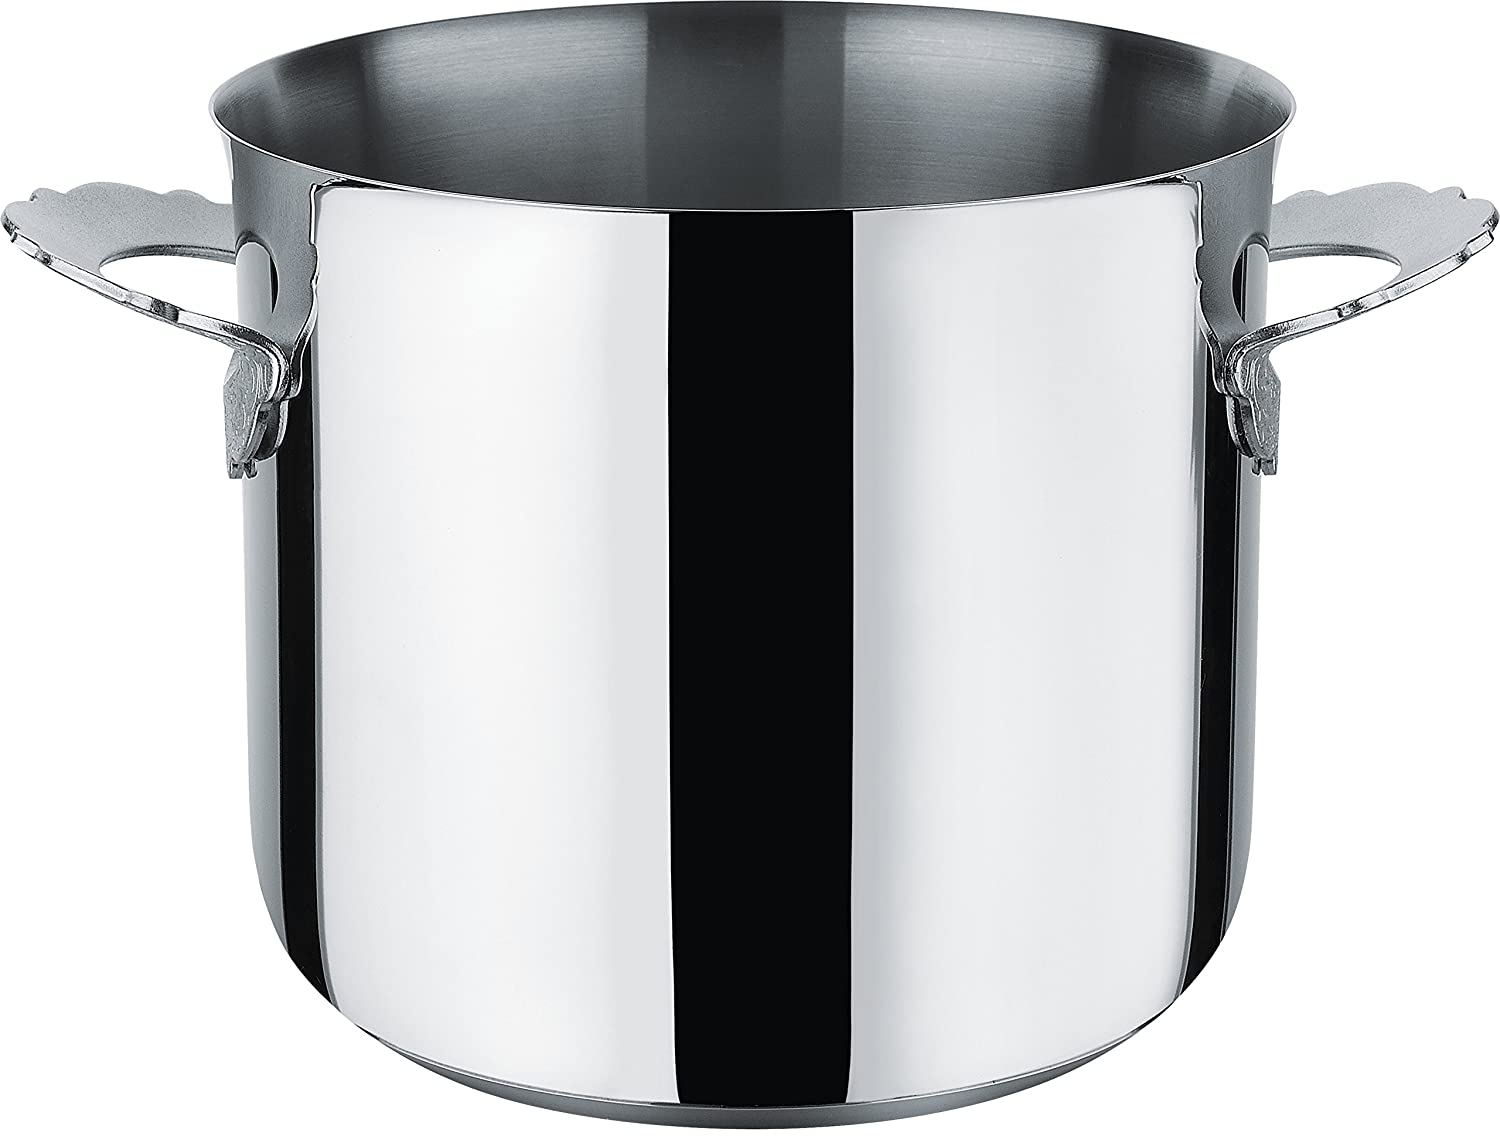 Black Alessi MW100//20Dressed Stockpot in 18//10 Stainless Steel Mirror Polished Magnetic Steel Bottom Suitable For induction Cooking